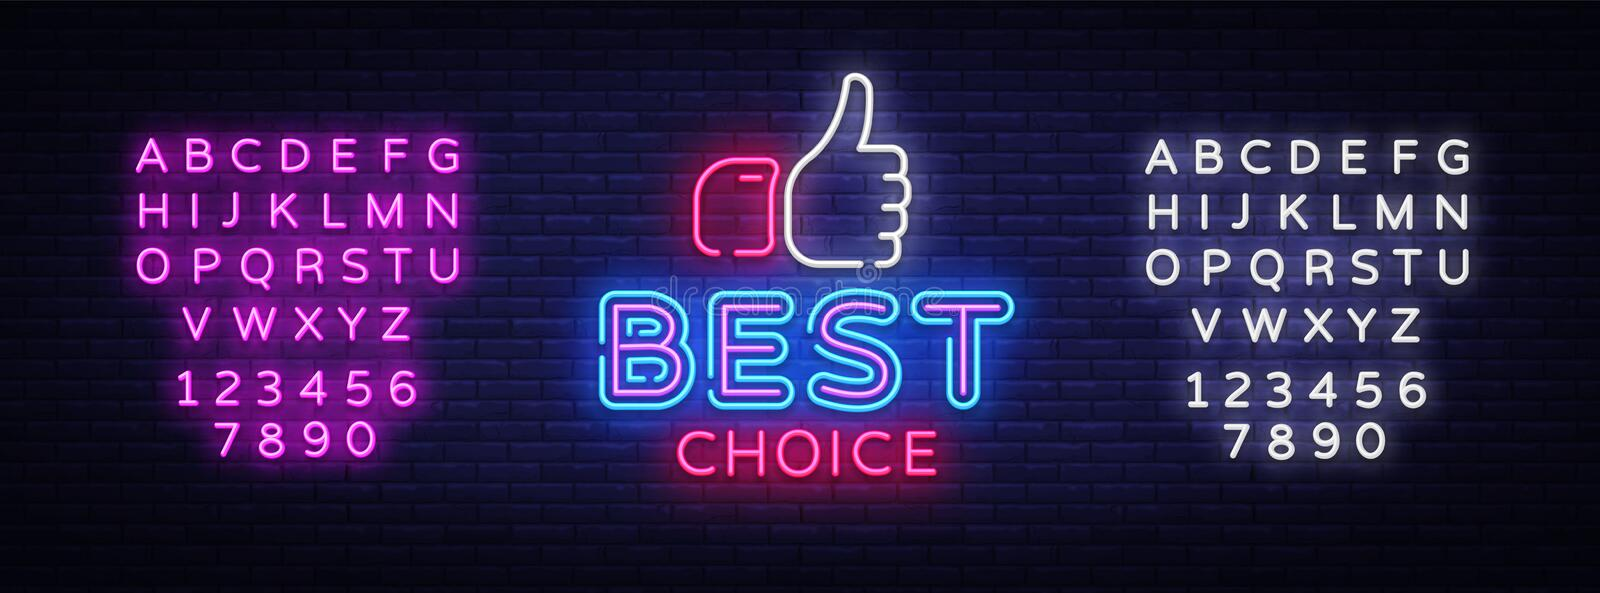 Best Choice neon sign vector. Best Choice Design template neon signboard, light banner, neon signboard, nightly bright vector illustration